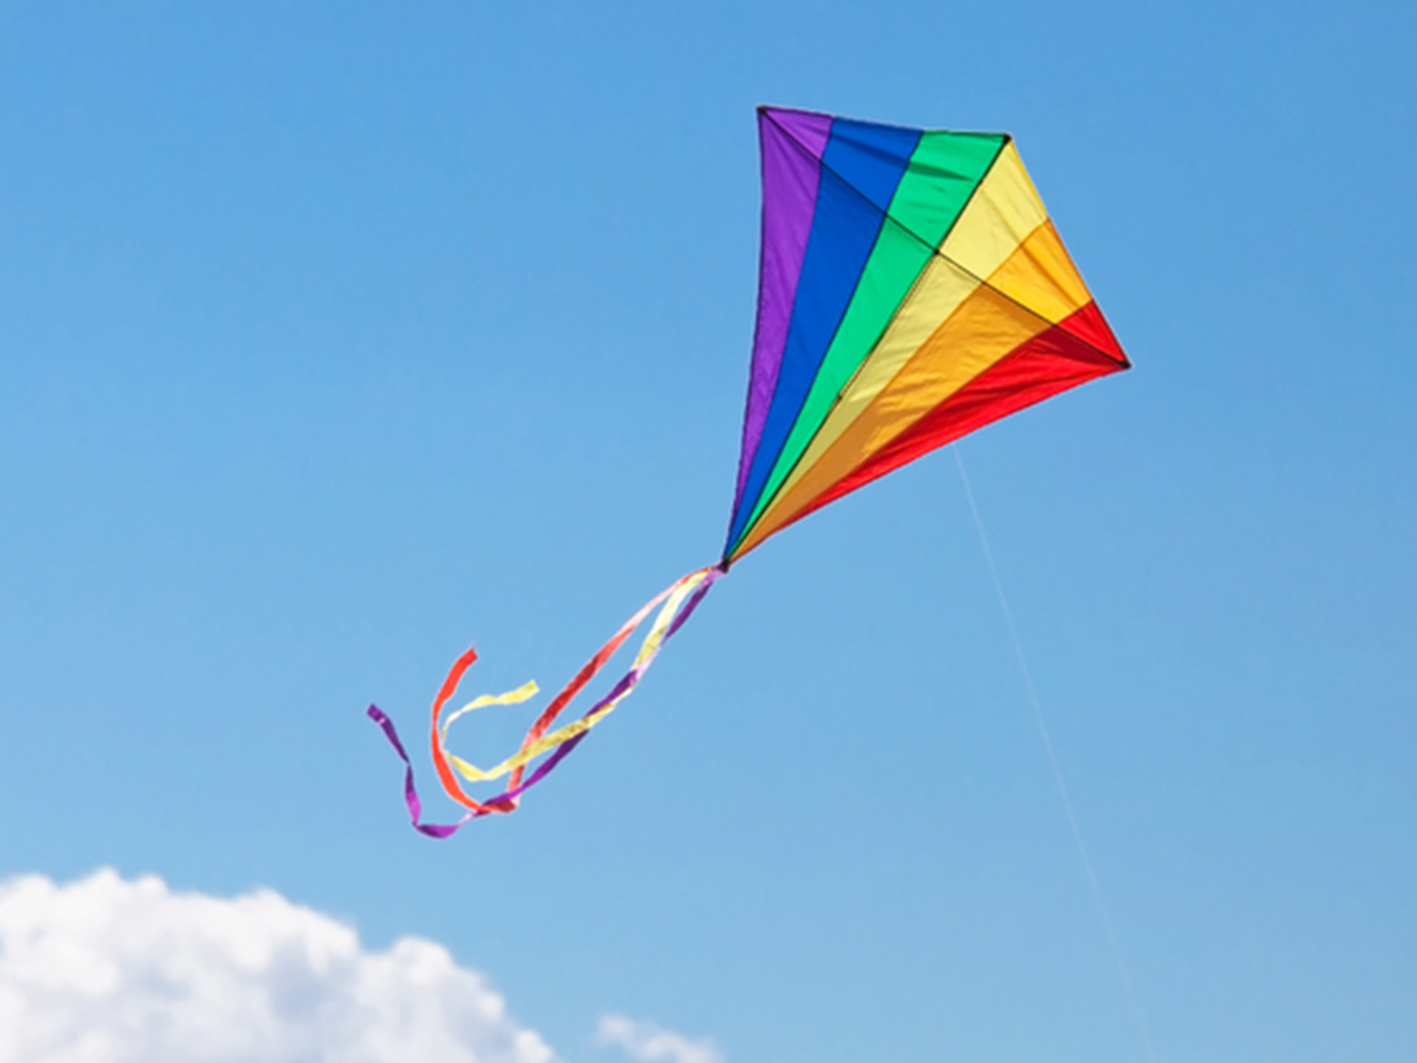 let u2019s go fly a kite children playing clip art black and white kid playing clipart